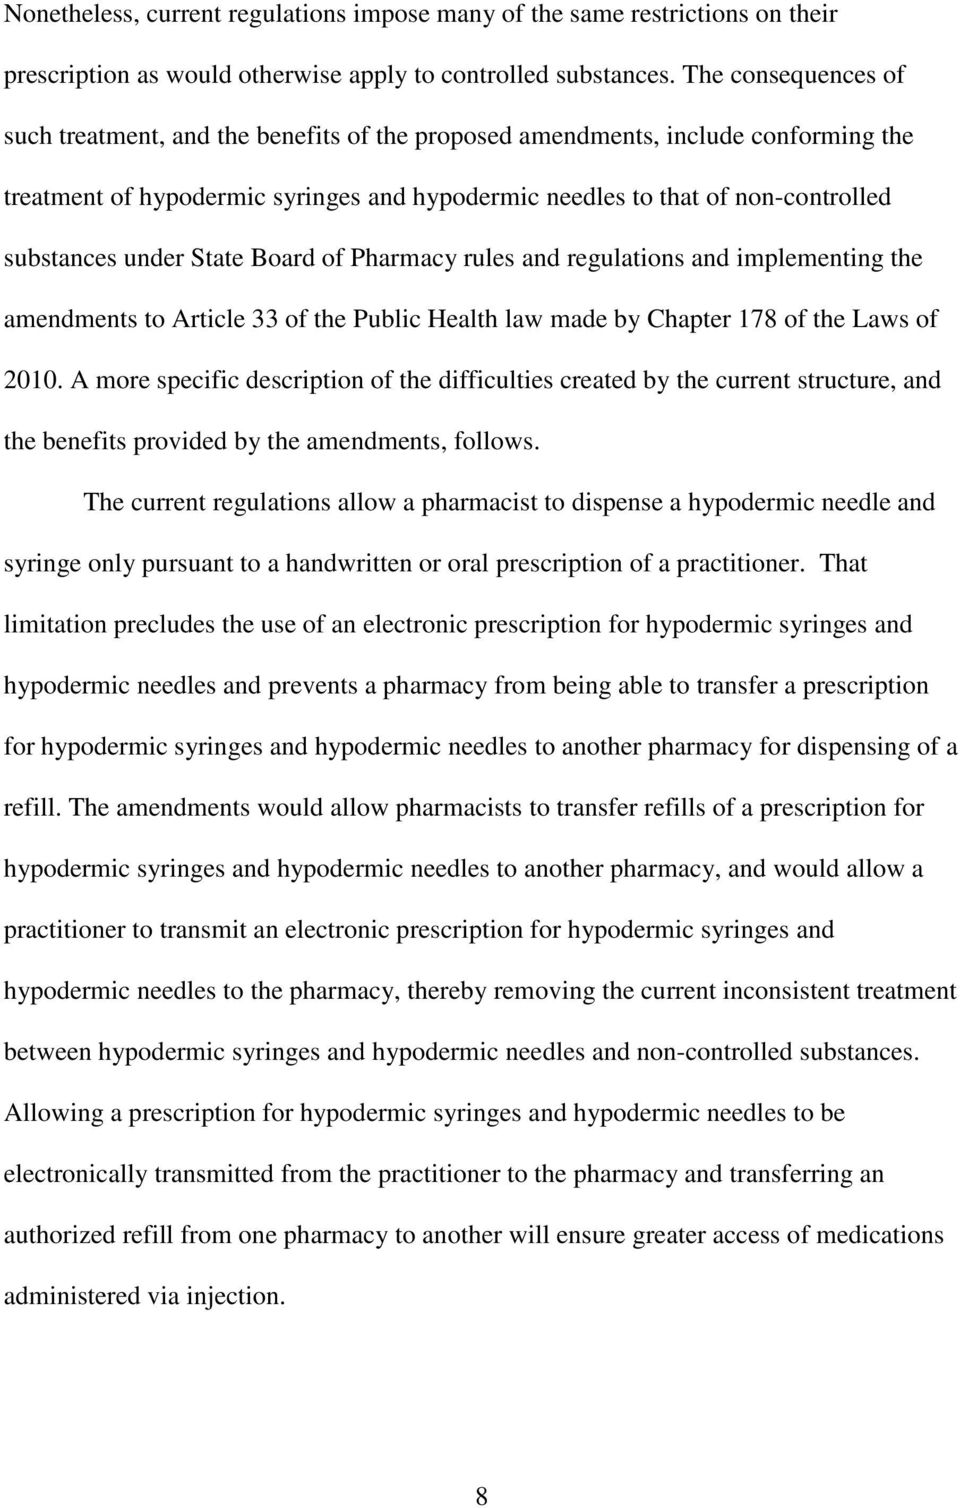 under State Board of Pharmacy rules and regulations and implementing the amendments to Article 33 of the Public Health law made by Chapter 178 of the Laws of 2010.